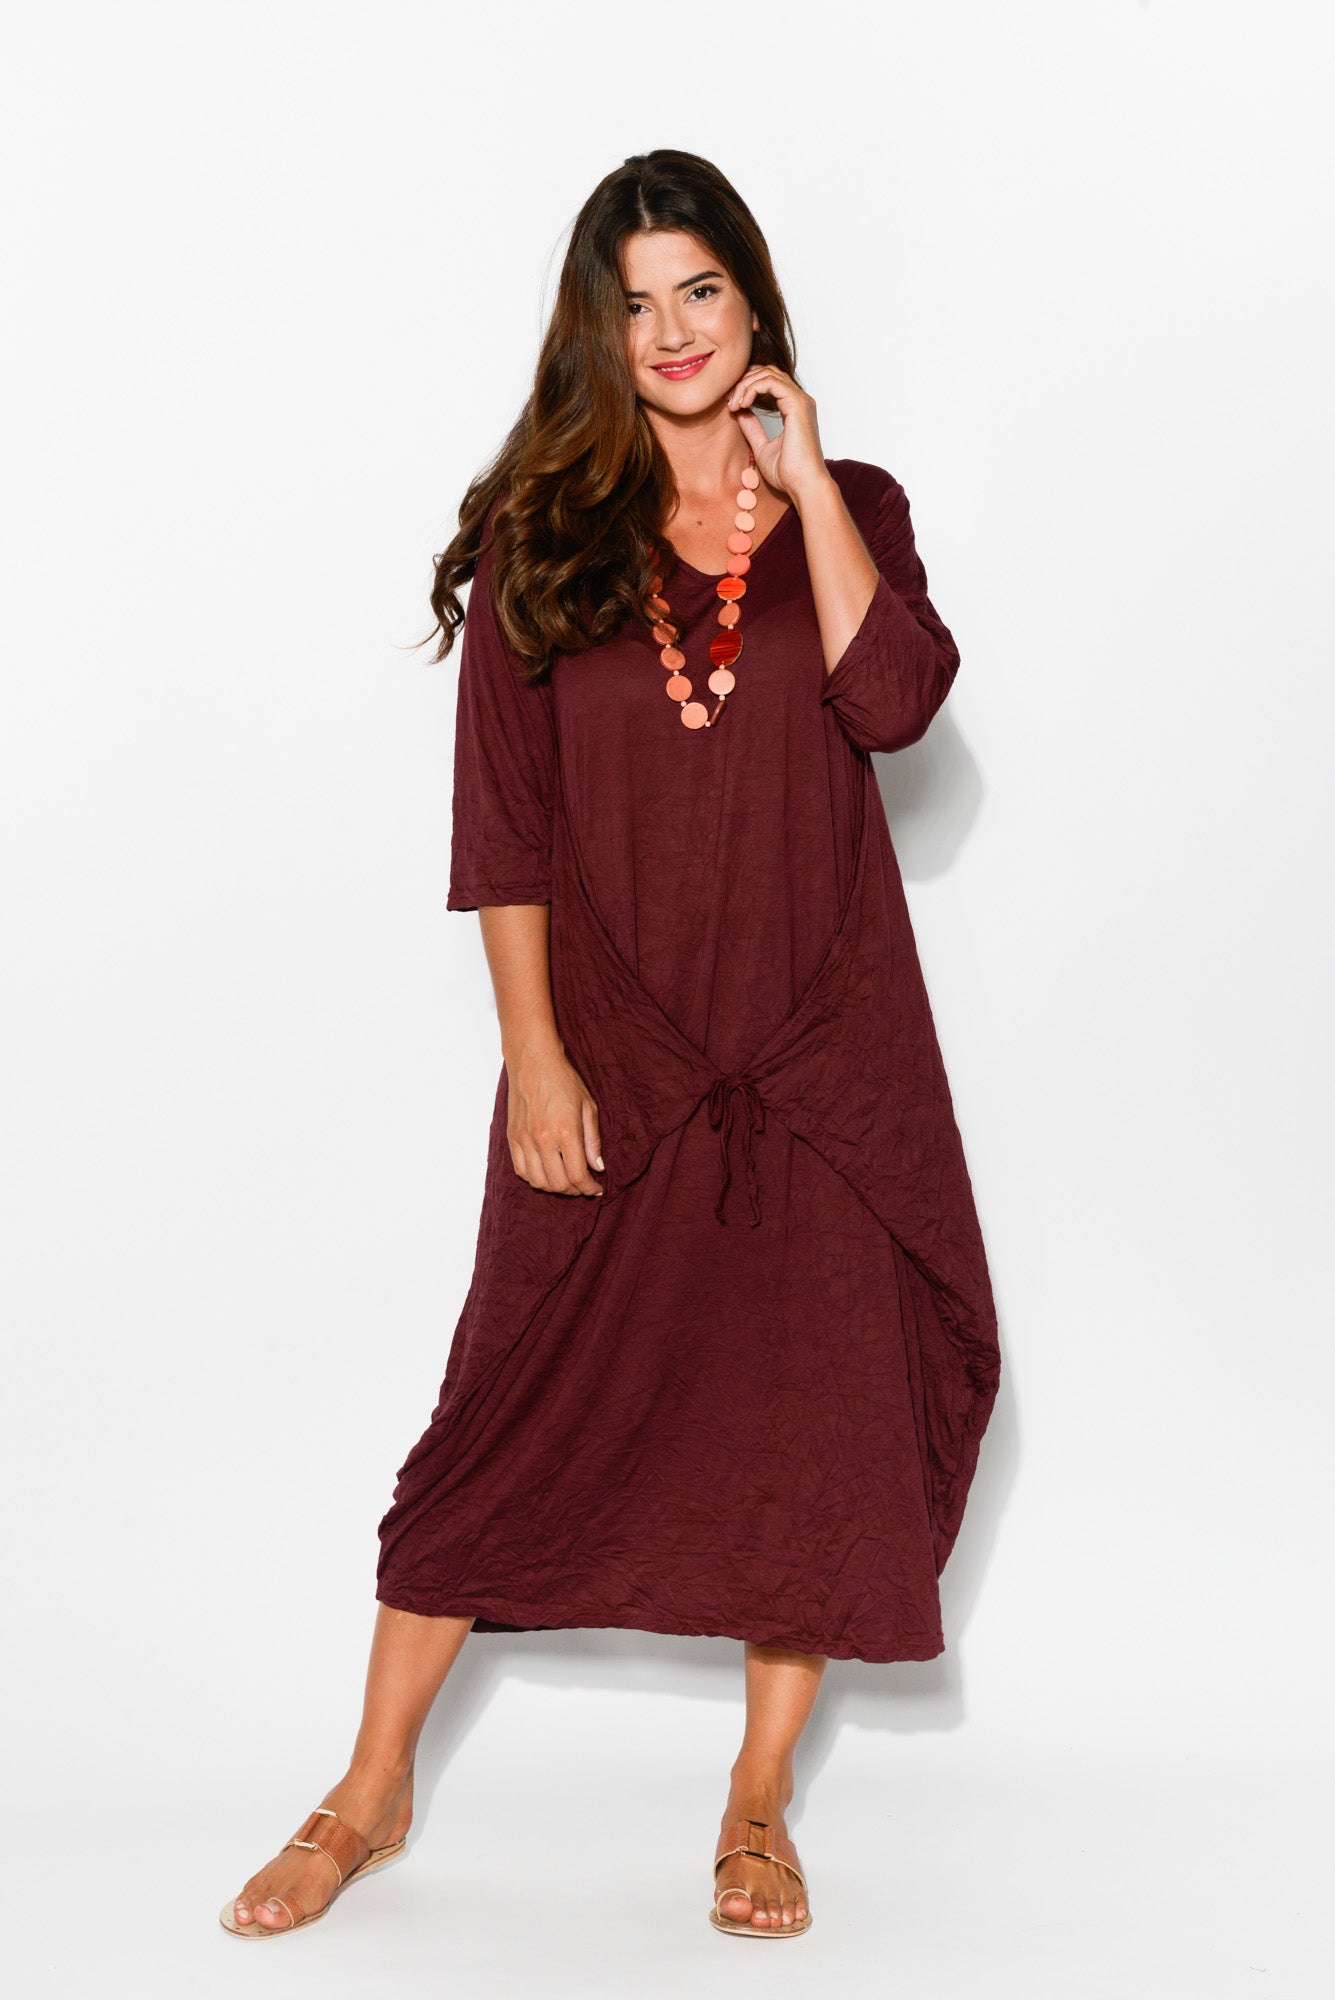 Burgundy Sleeved Cotton Side Tie Dress - Blue Bungalow